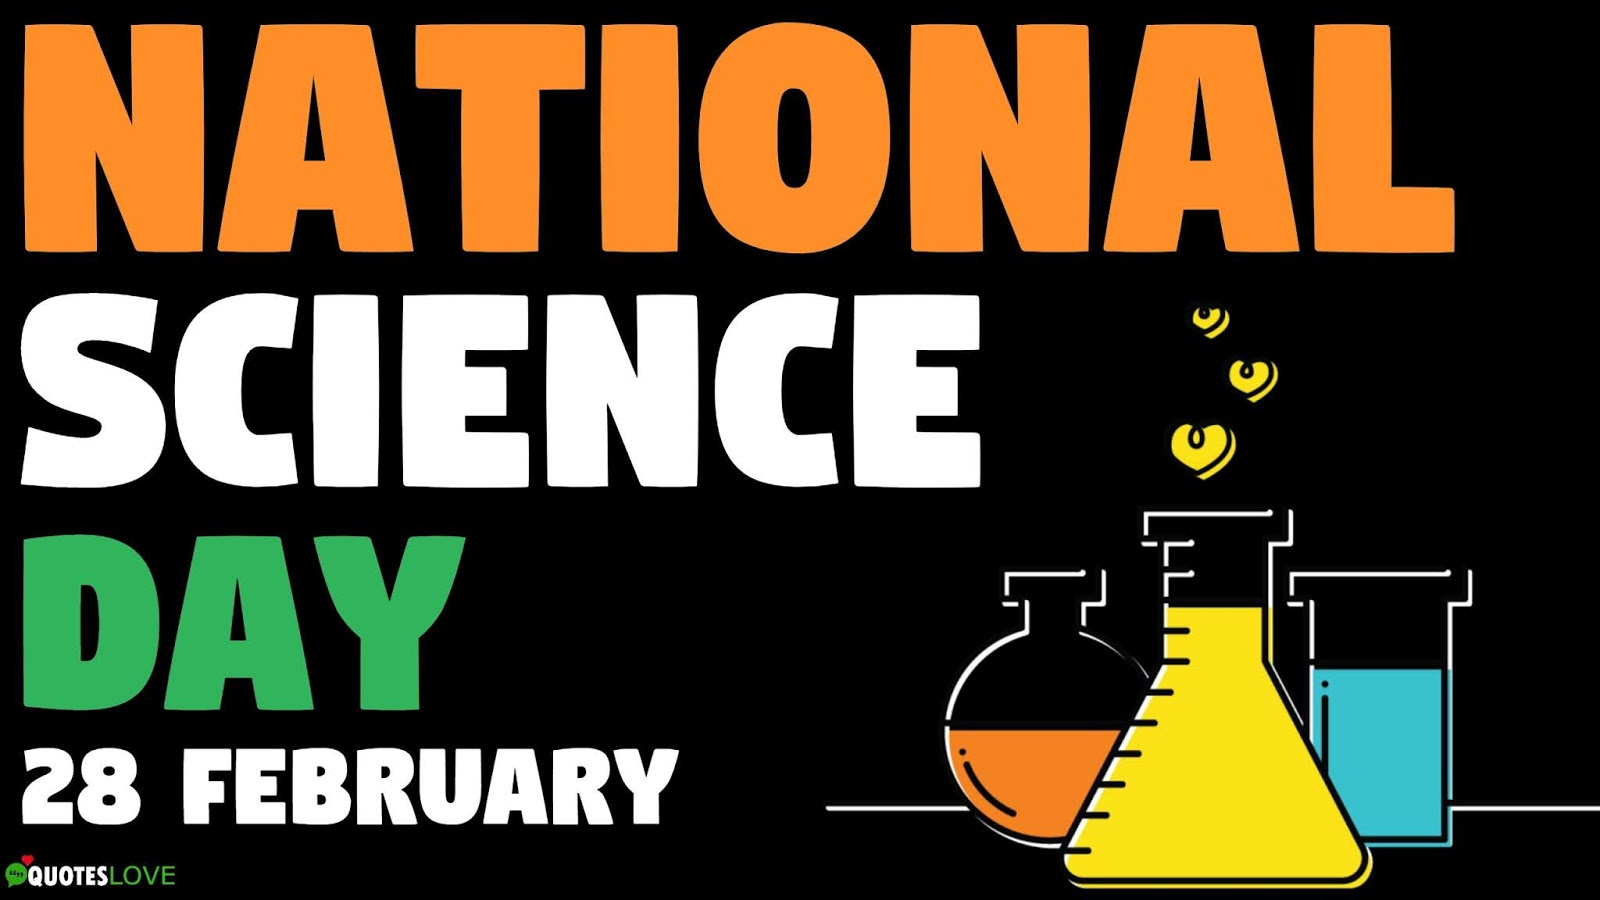 National Science Day Quotes, Wishes, Messages, Speech, Images, Drawing, Poster, Logo